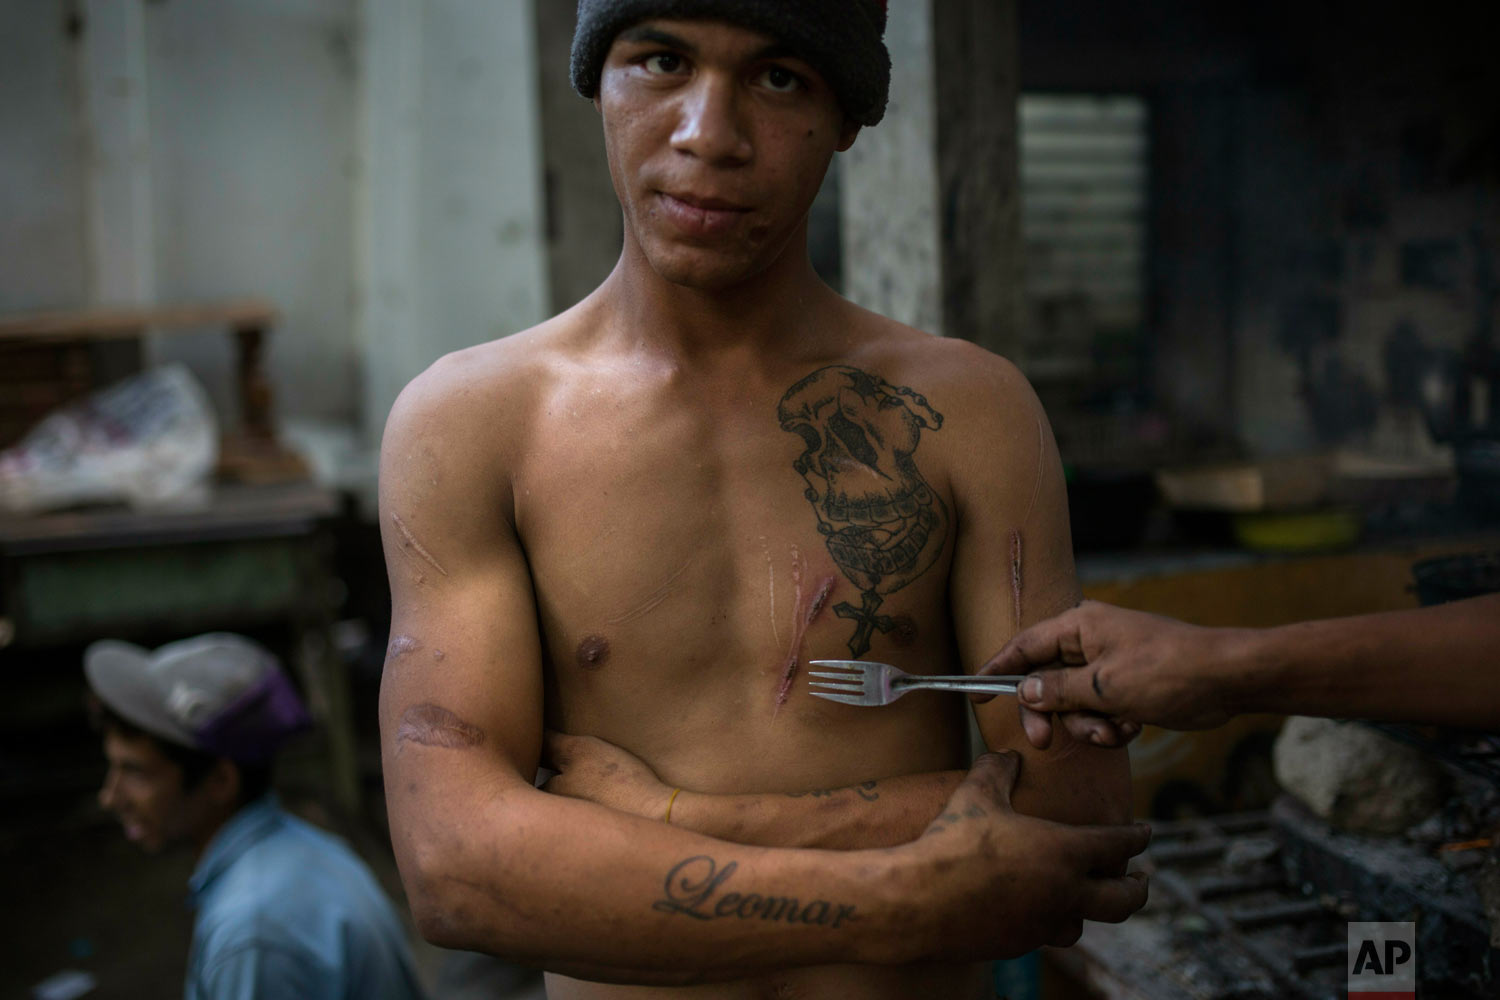 Leomar Aguilar show the scars he got in prison as he gathers with friends outside a building occupied by squatting families in Caracas, Venezuela, Tuesday, May 7, 2019. Aguilar spent six years in prison after being convicted of robbery but went to live with the squatters after his release as he had nowhere else to go. (AP Photo/Rodrigo Abd)